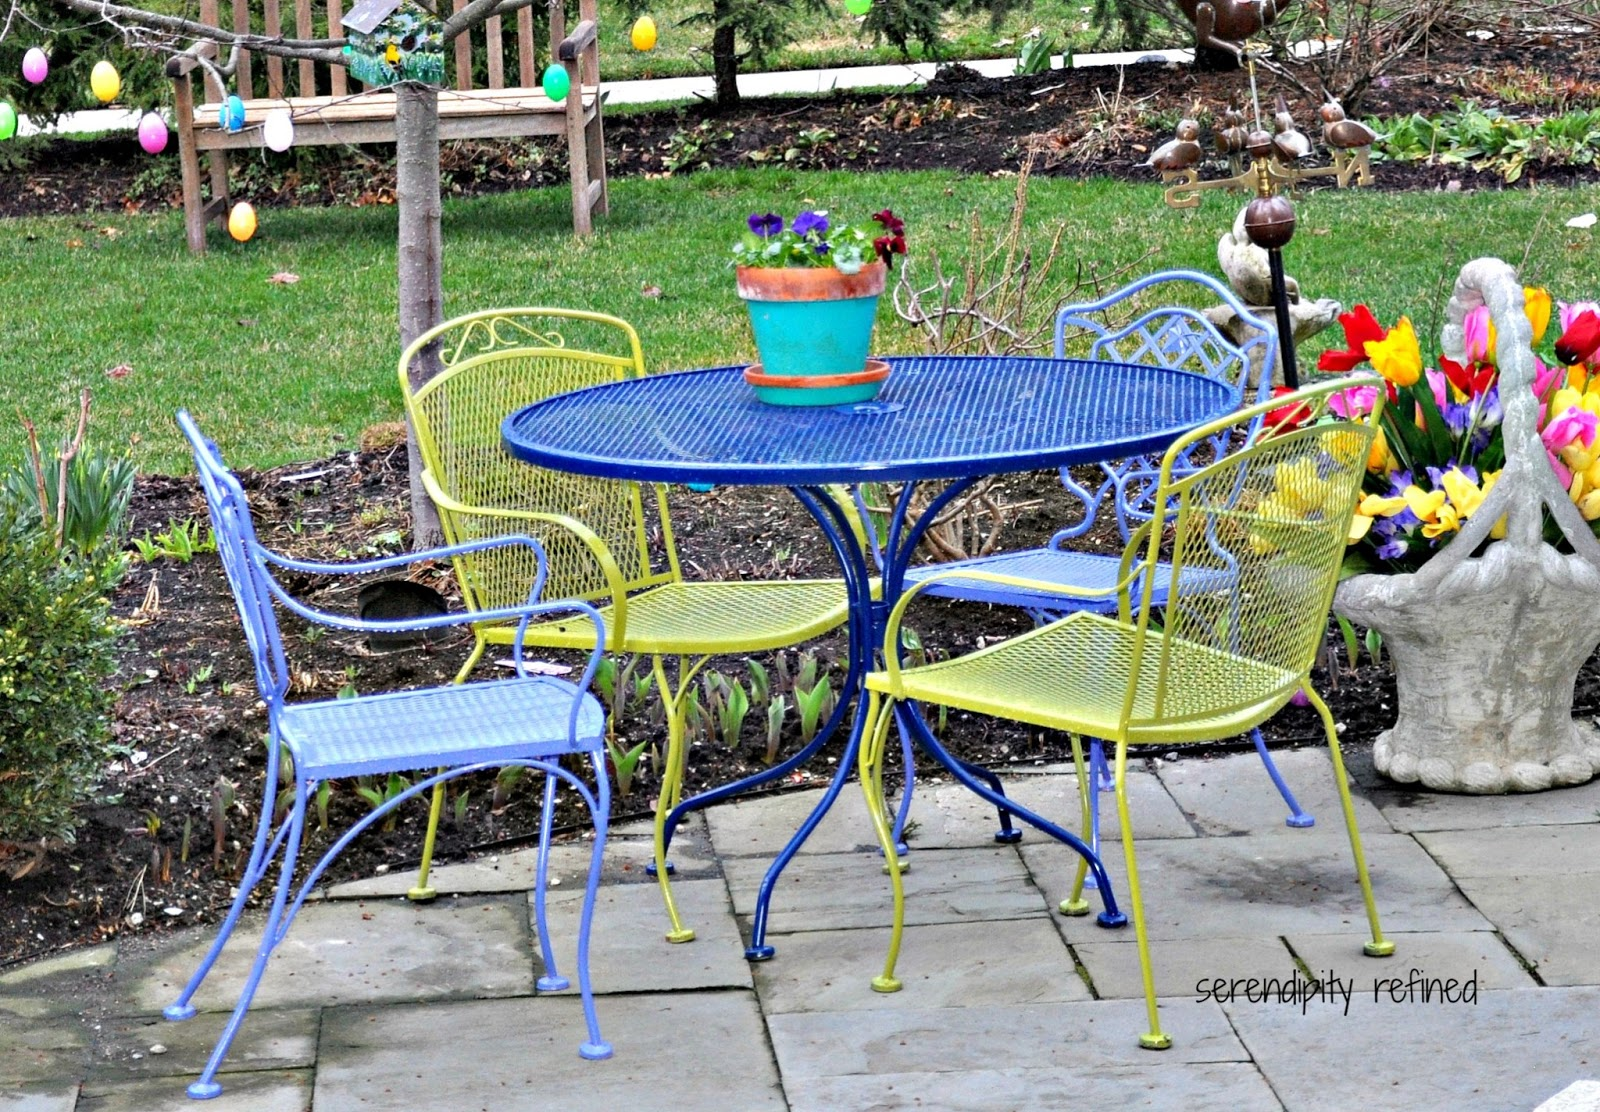 Serendipity refined blog wicker and wrought iron patio furniture makeover Spray painting metal patio furniture